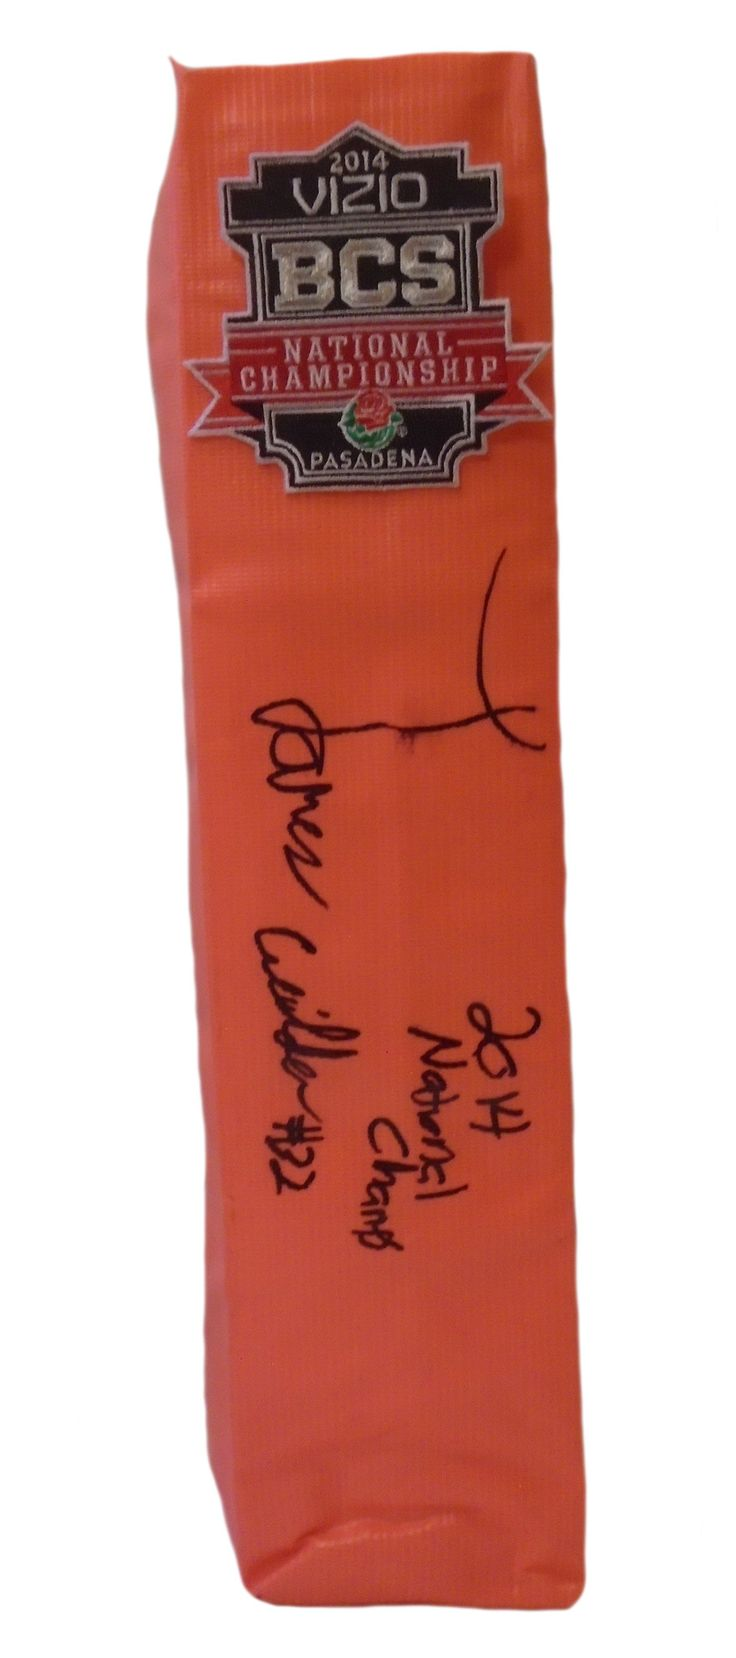 James Wilder Jr signed Florida State Seminoles full size football touchdown end zone pylon w/ proof photo.  Proof photo of James signing will be included with your purchase along with a COA issued from Southwestconnection-Memorabilia, guaranteeing the item to pass authentication services from PSA/DNA or JSA. Free USPS shipping. www.AutographedwithProof.com is your one stop for autographed collectibles from FSU Noles & NCAA teams.